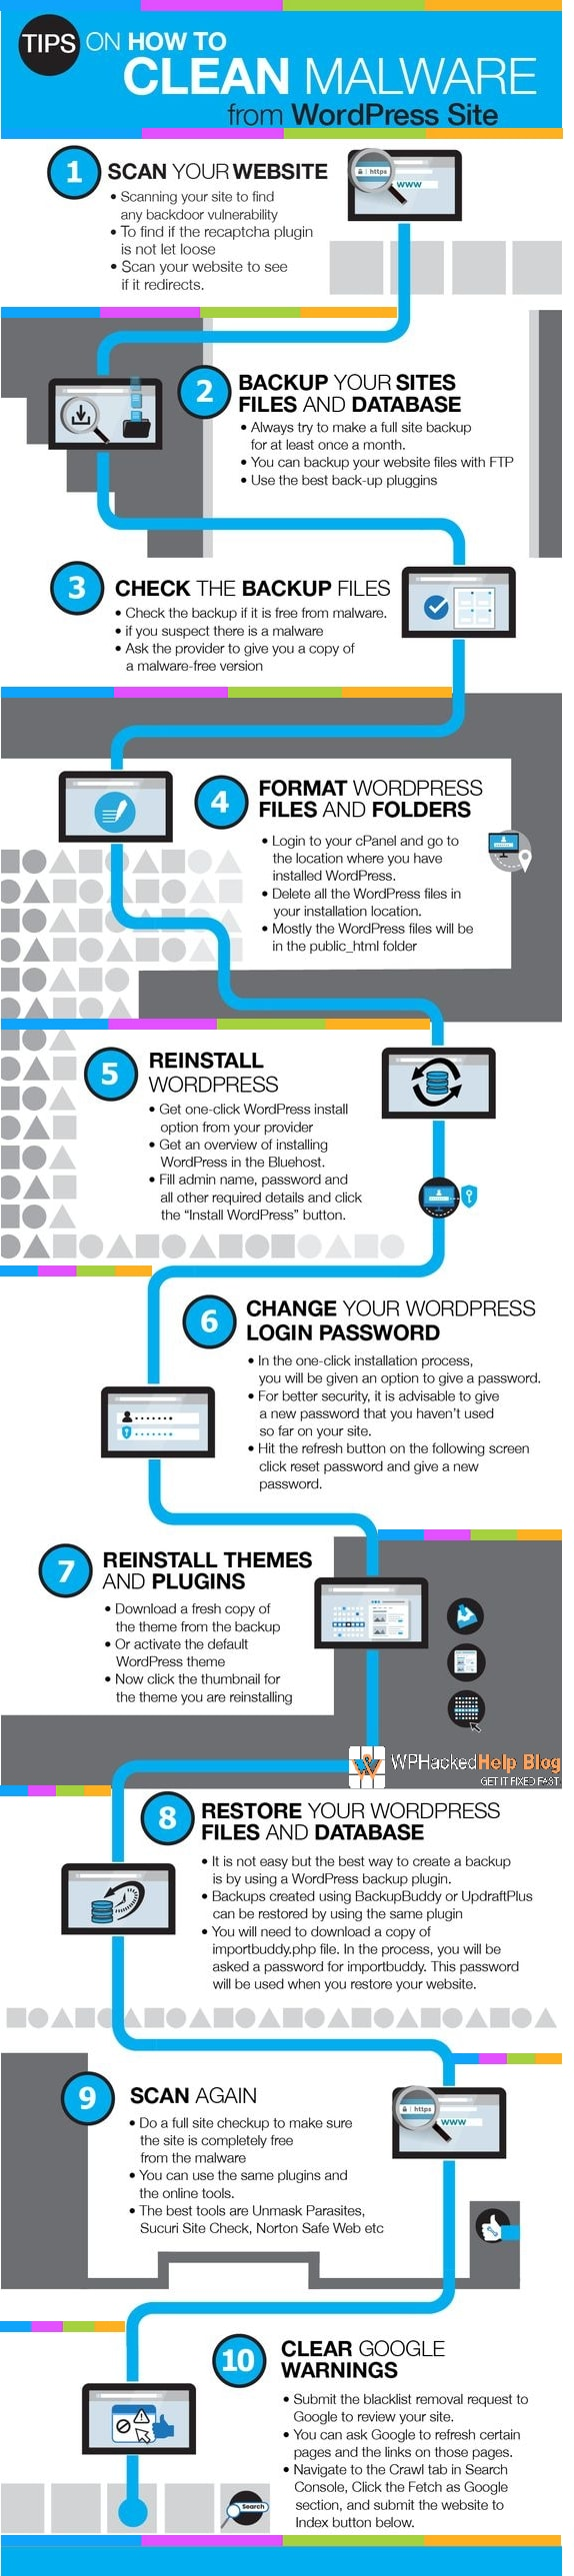 wordpress malware cleanup steps infographic